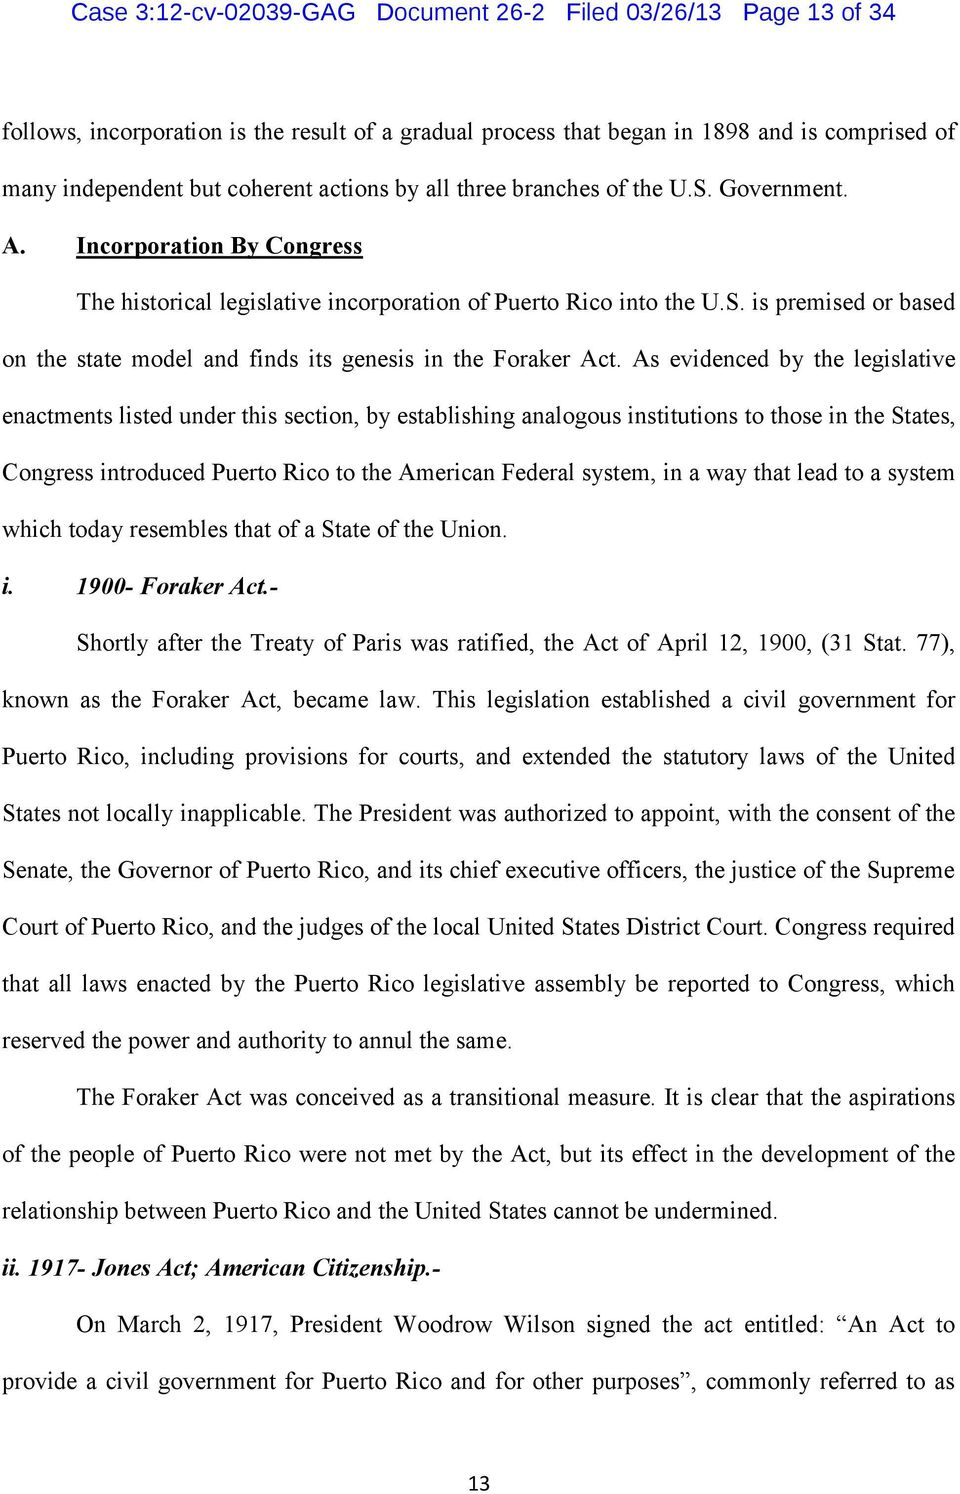 As evidenced by the legislative enactments listed under this section, by establishing analogous institutions to those in the States, Congress introduced Puerto Rico to the American Federal system, in